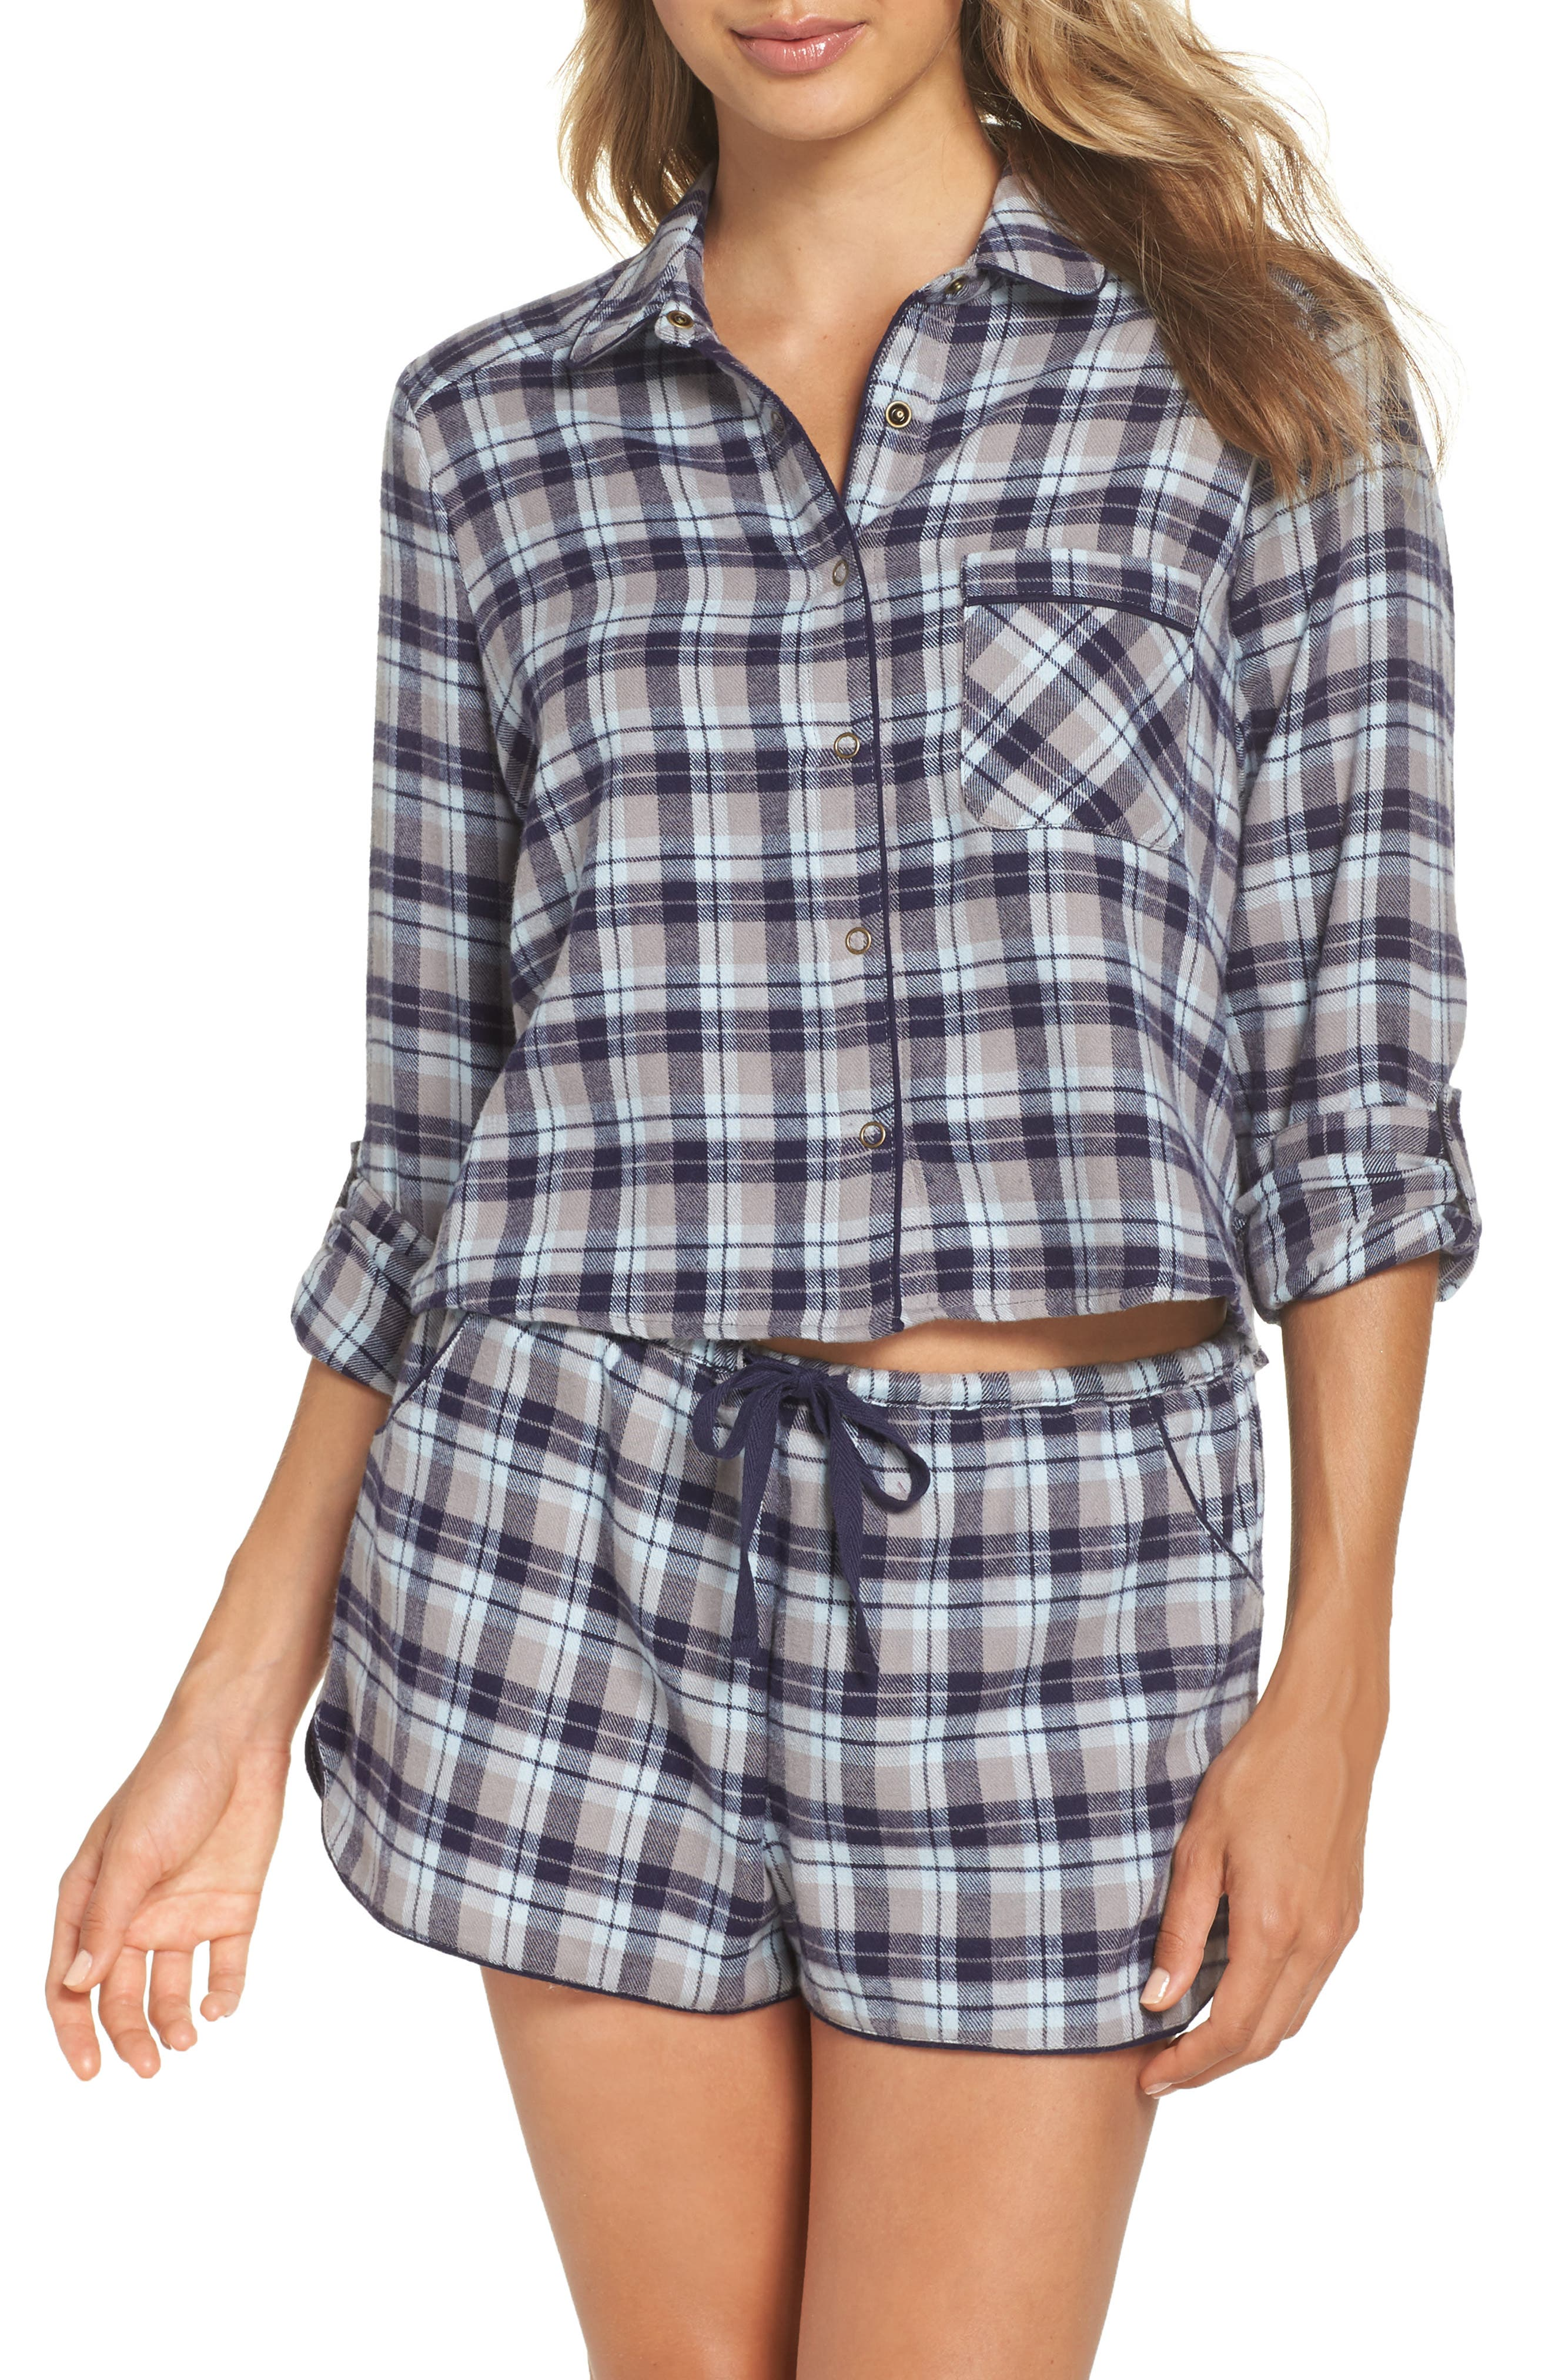 Crop Flannel Pajama Top,                             Alternate thumbnail 7, color,                             GREY FROST LUCY PLAID